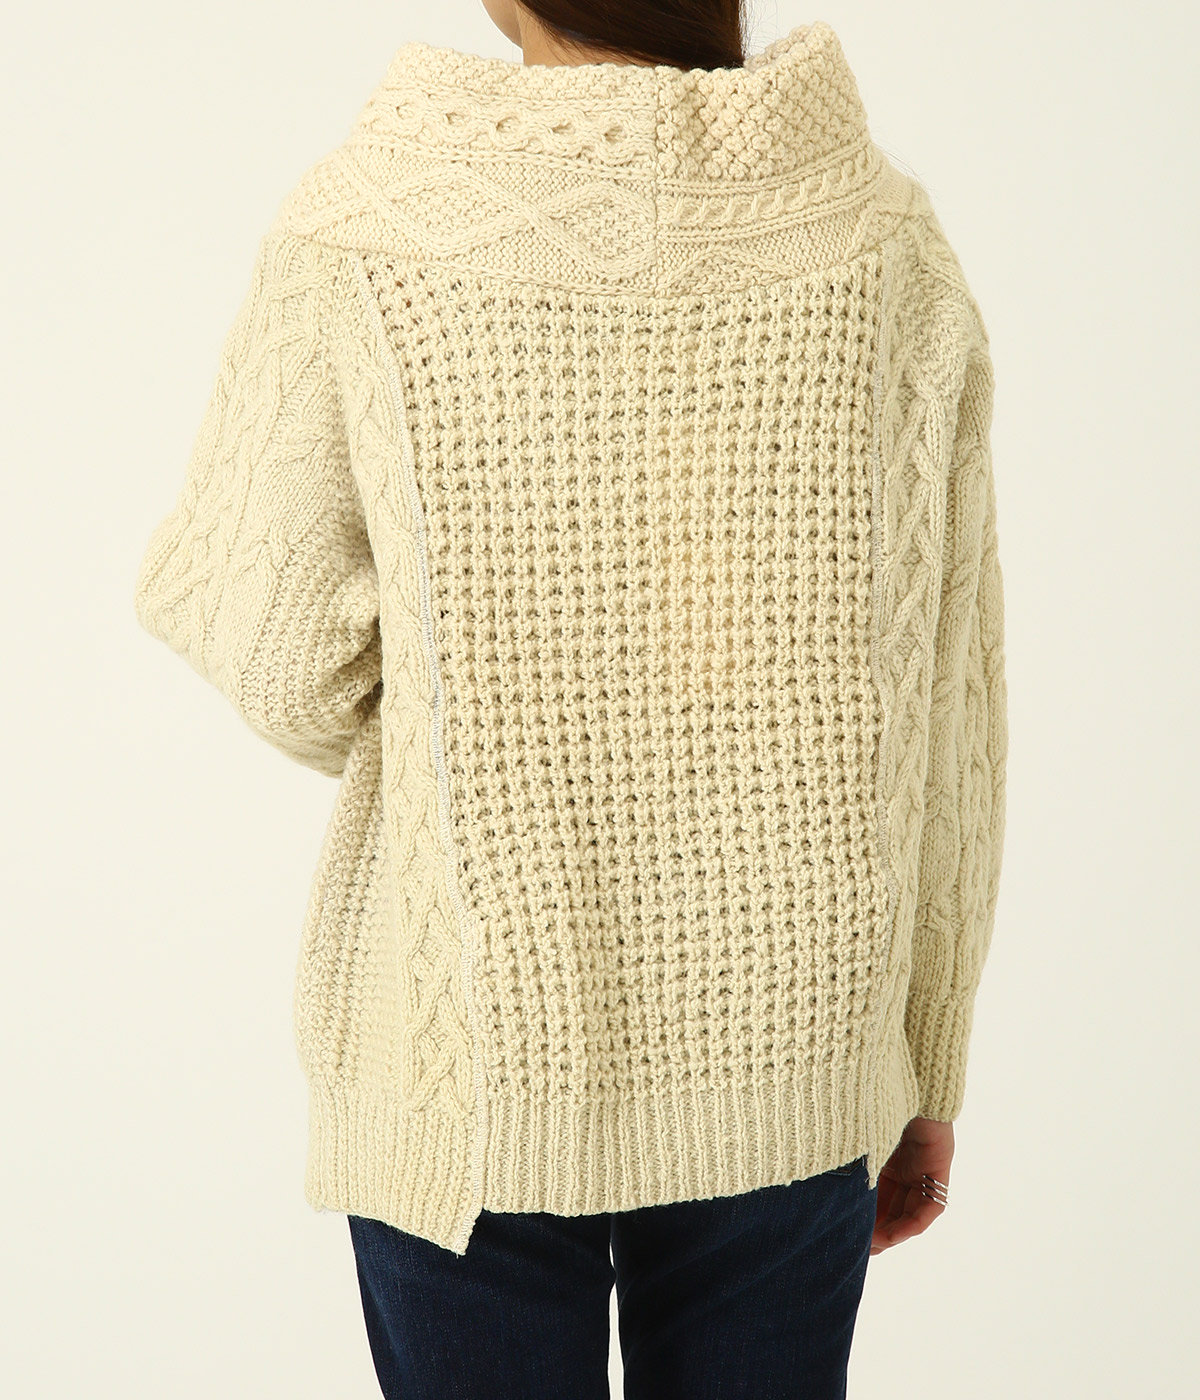 【レディース】circa make thick v/n fisherman sweater